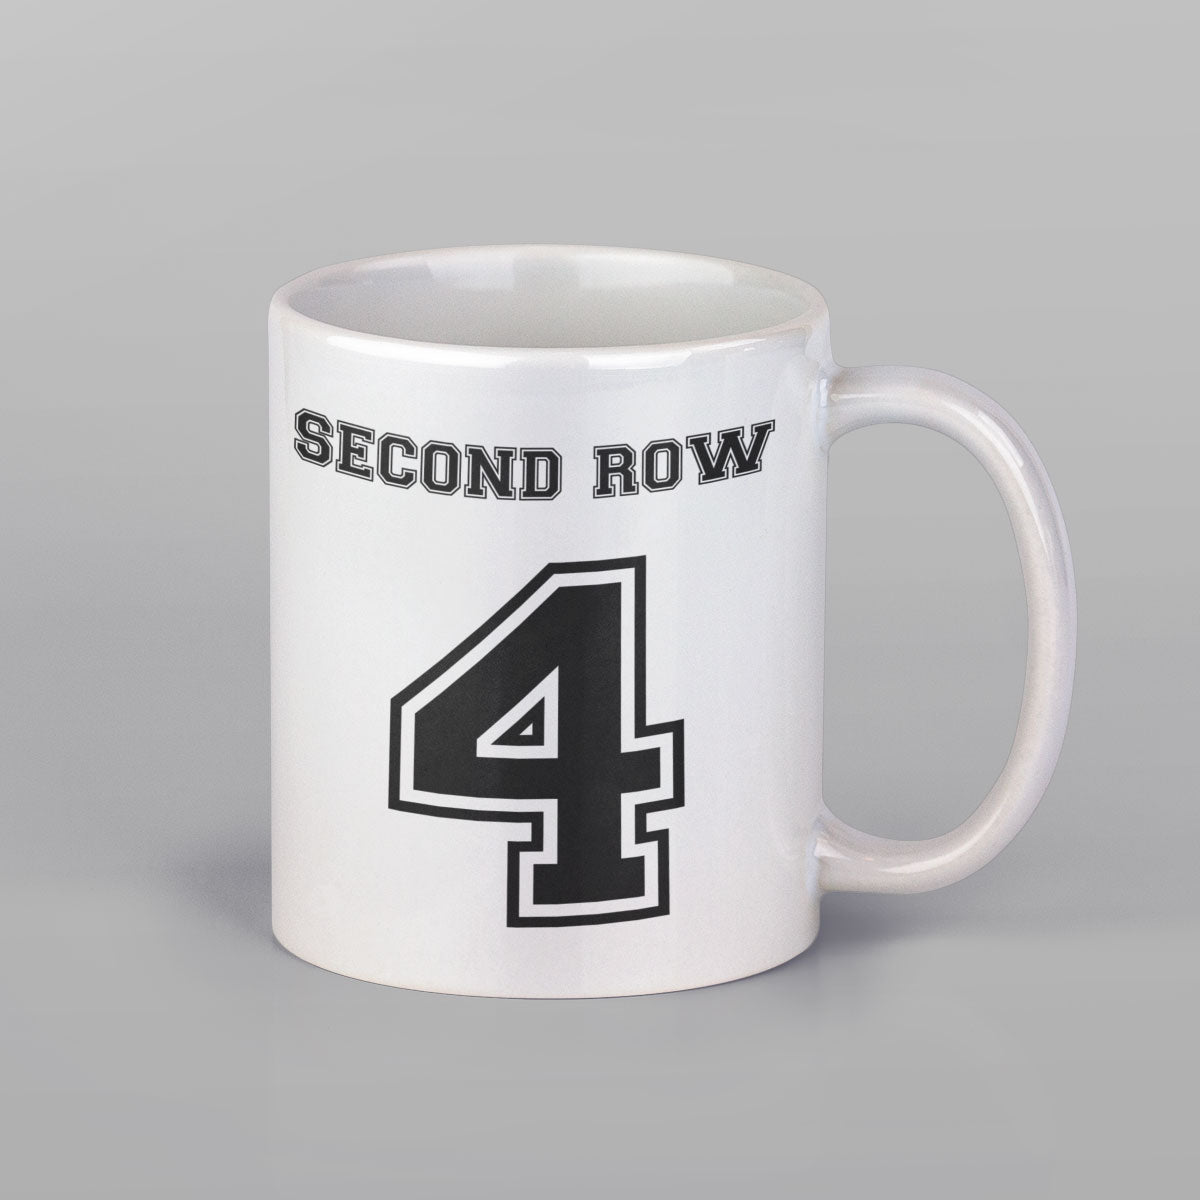 Second Row Number 4 Rugby Mug